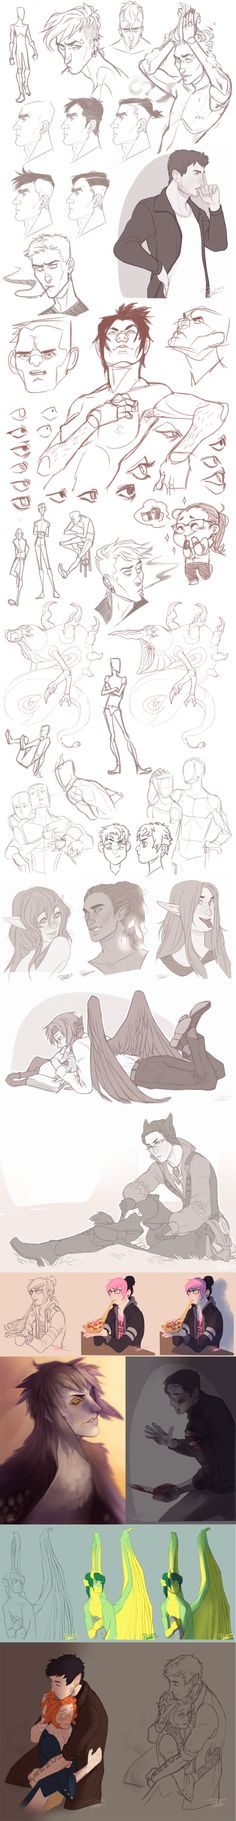 Sketch Dump 14 by Rejuch on DeviantArt